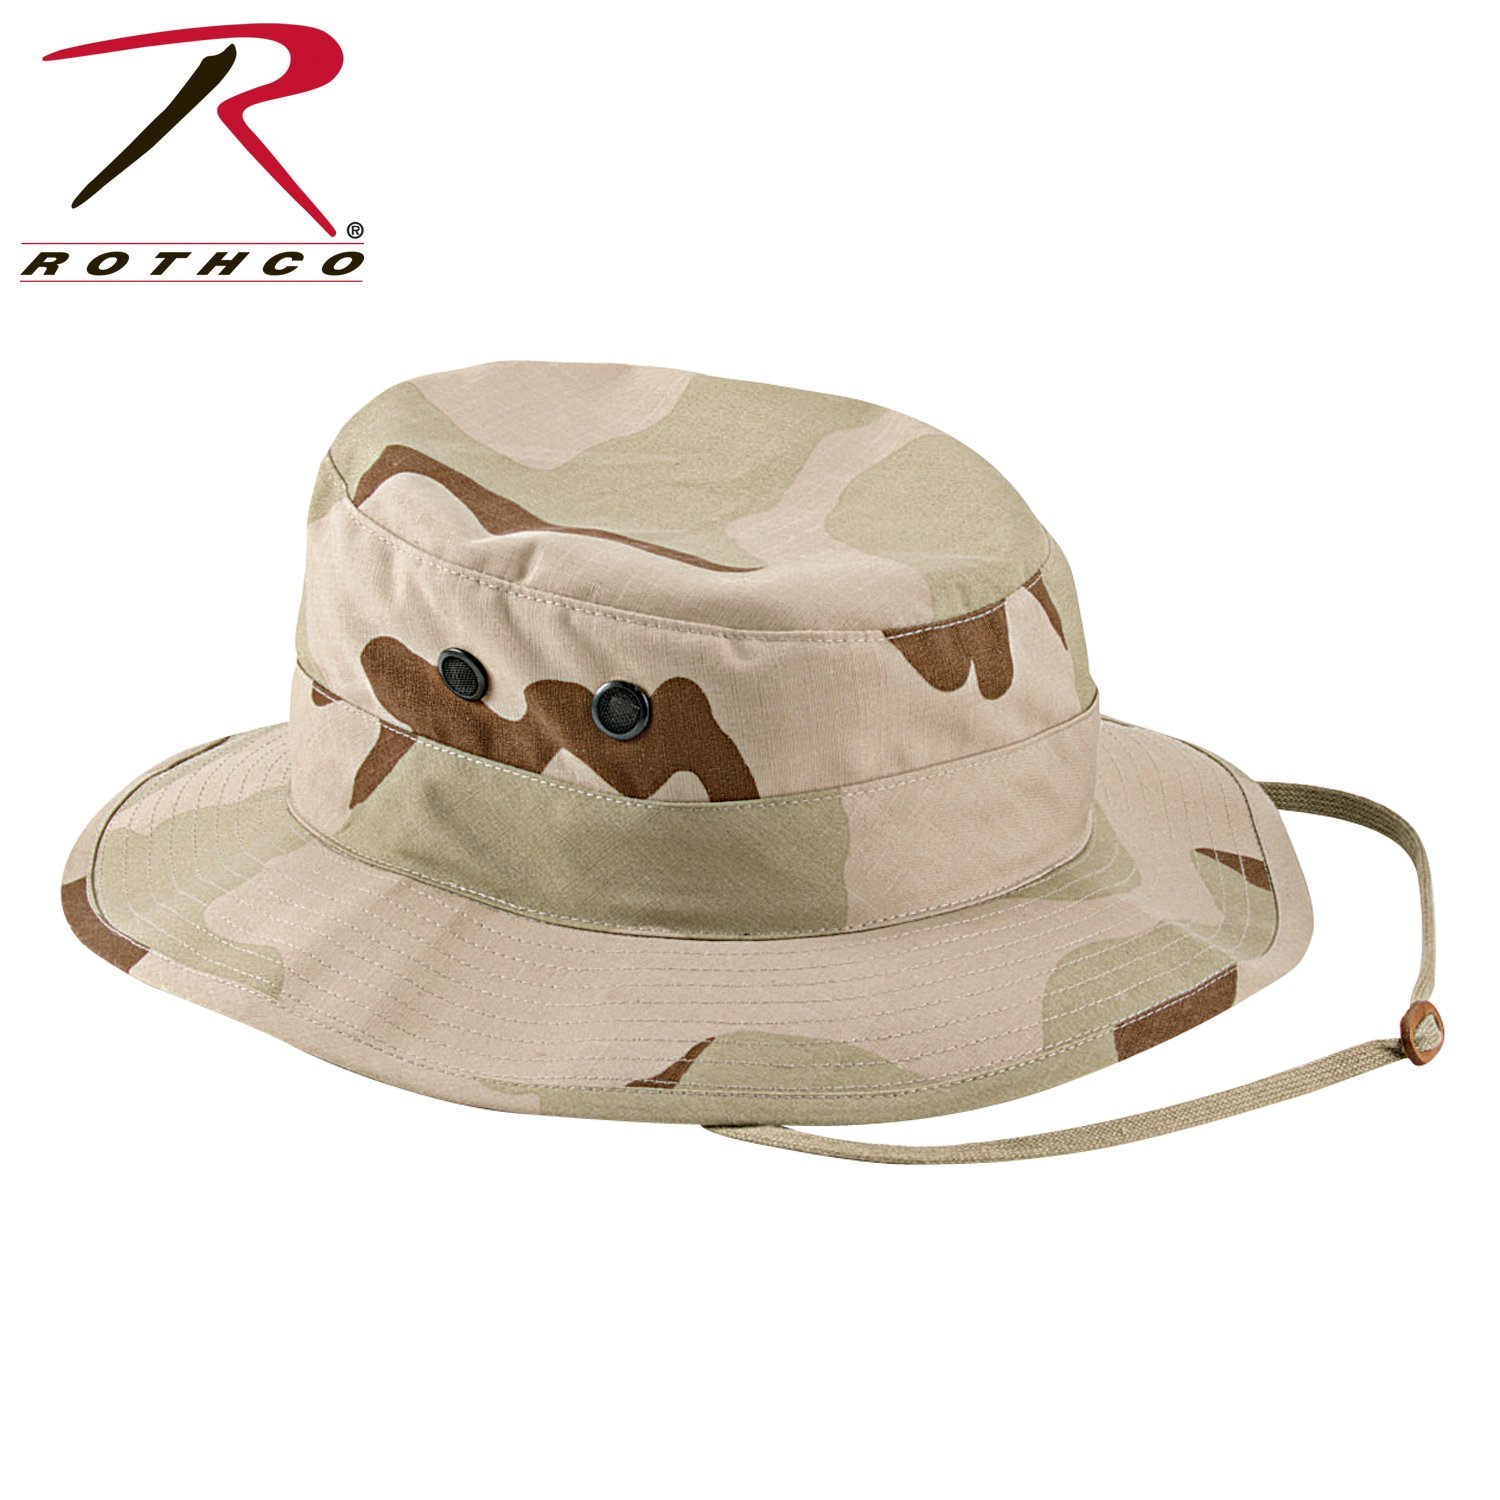 7648fd6debc Amazon.com  Tri-Color Desert Camouflage Military Boonie Hat 5824 Size 7.5   Military Apparel Accessories  Clothing